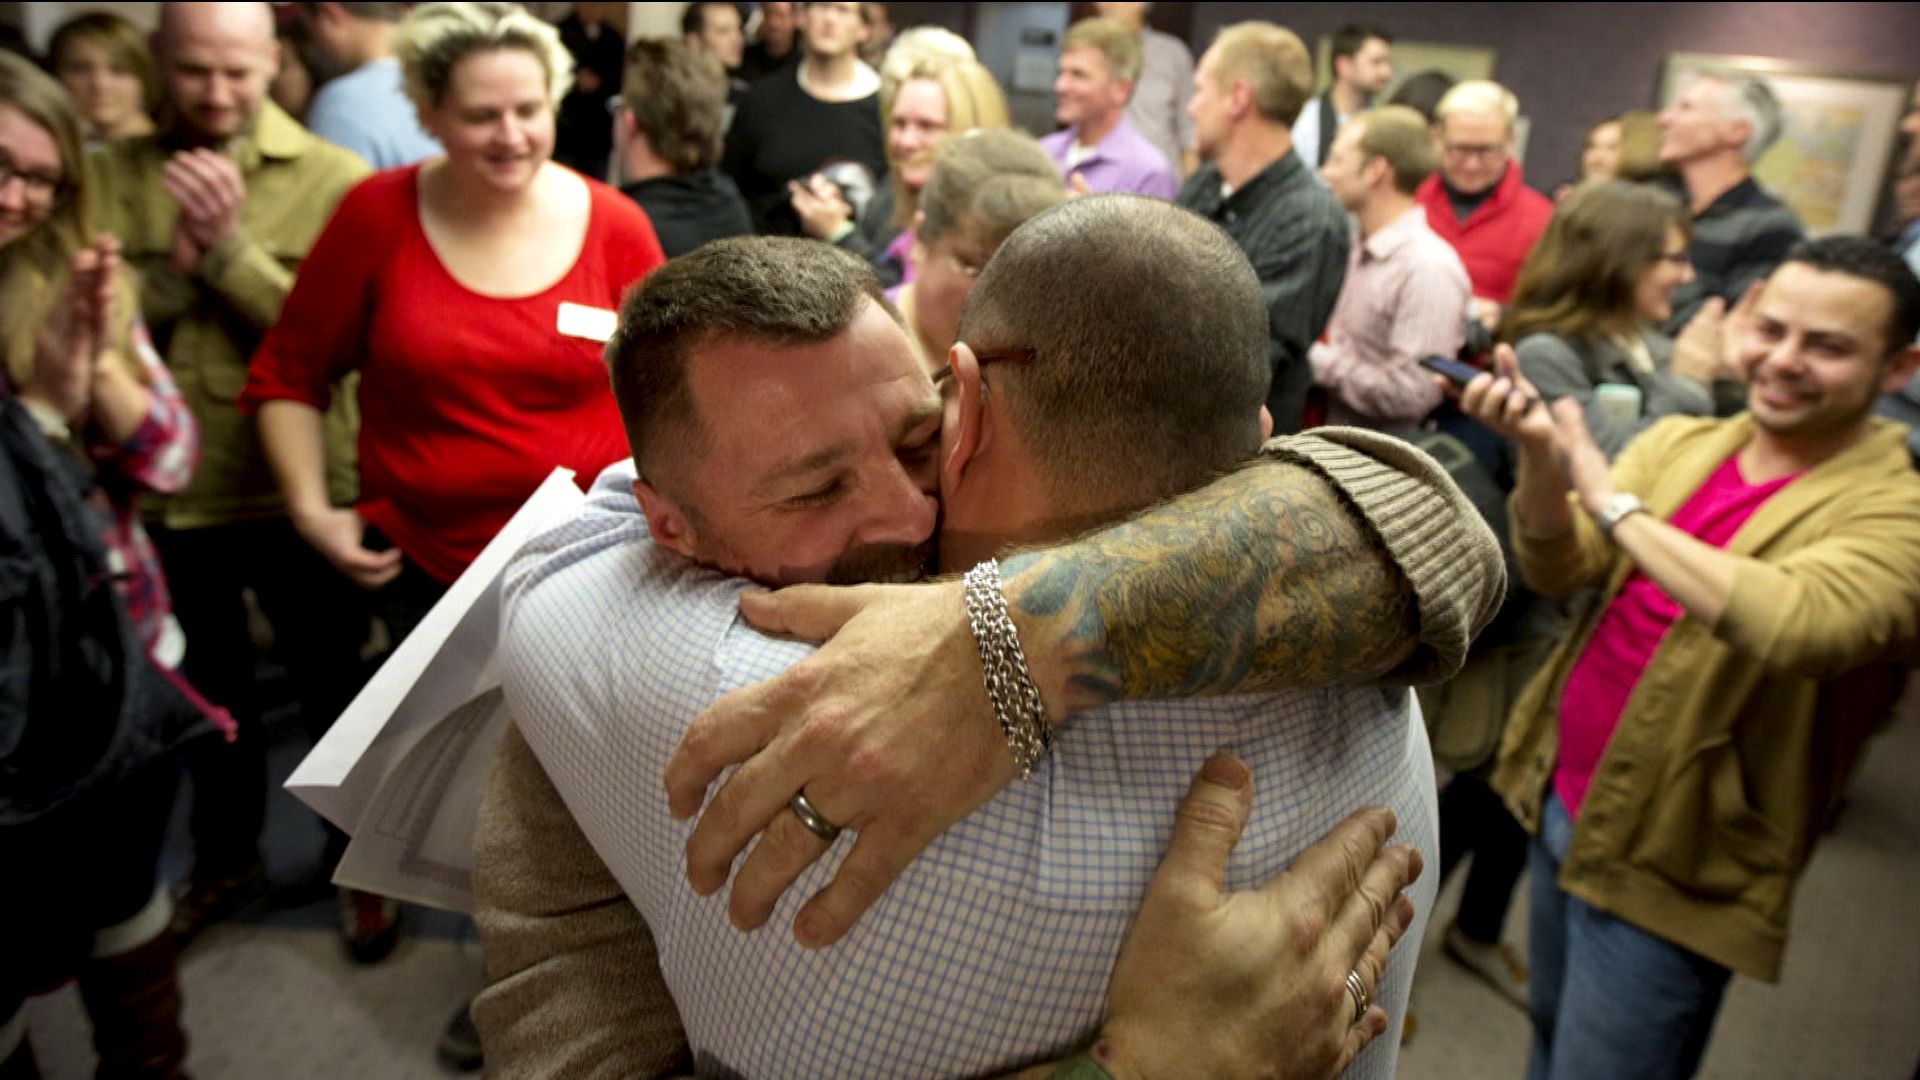 Utah AG seeks help to end marriage equality